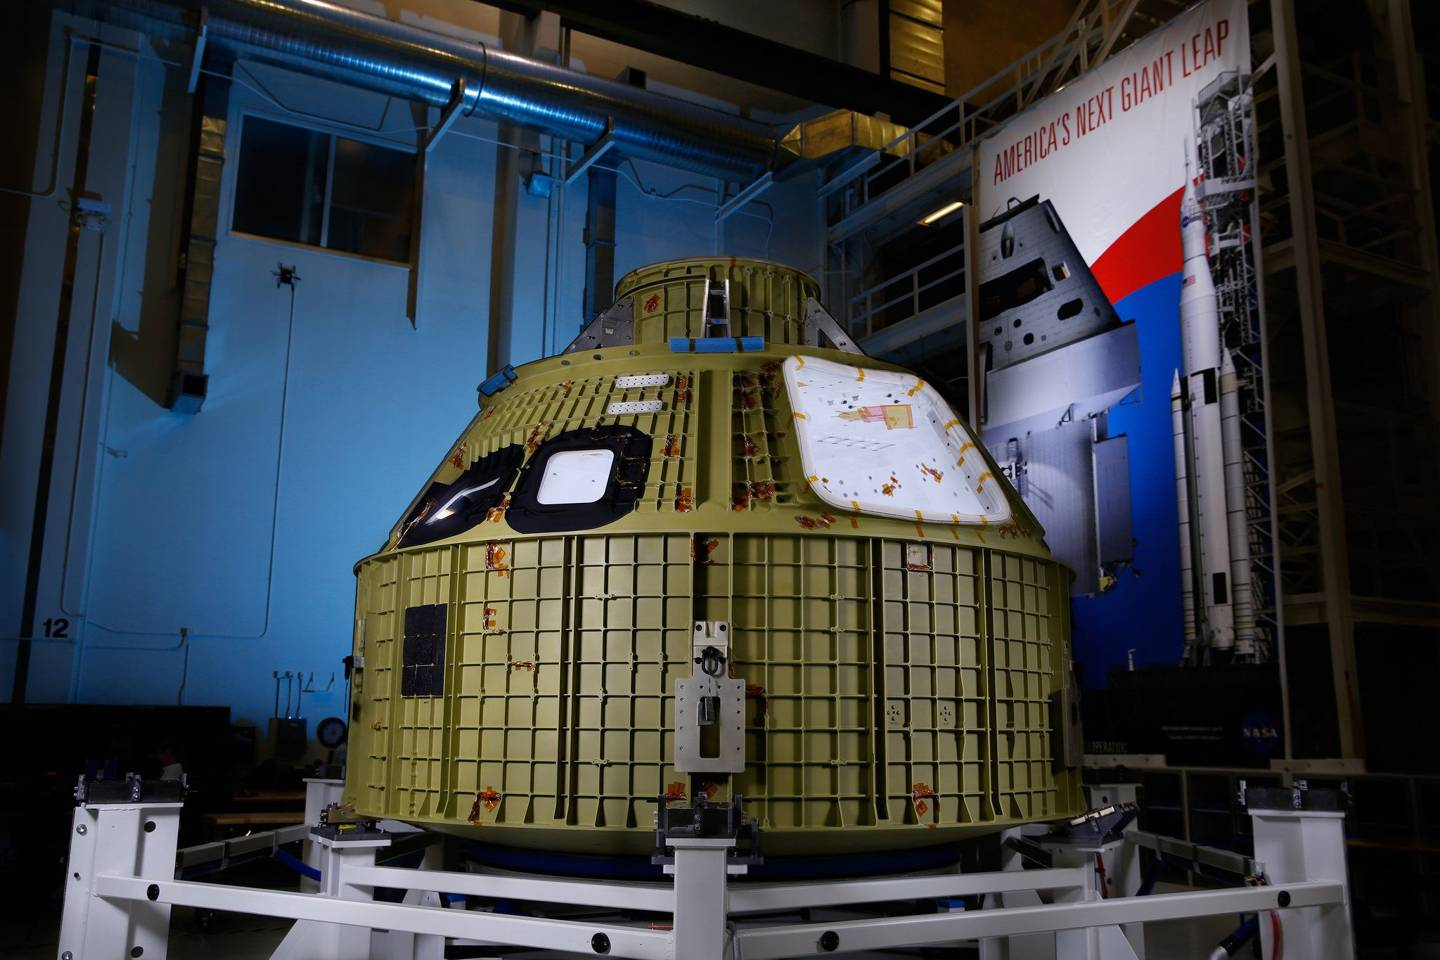 nasa orion mission - HD 1440×960